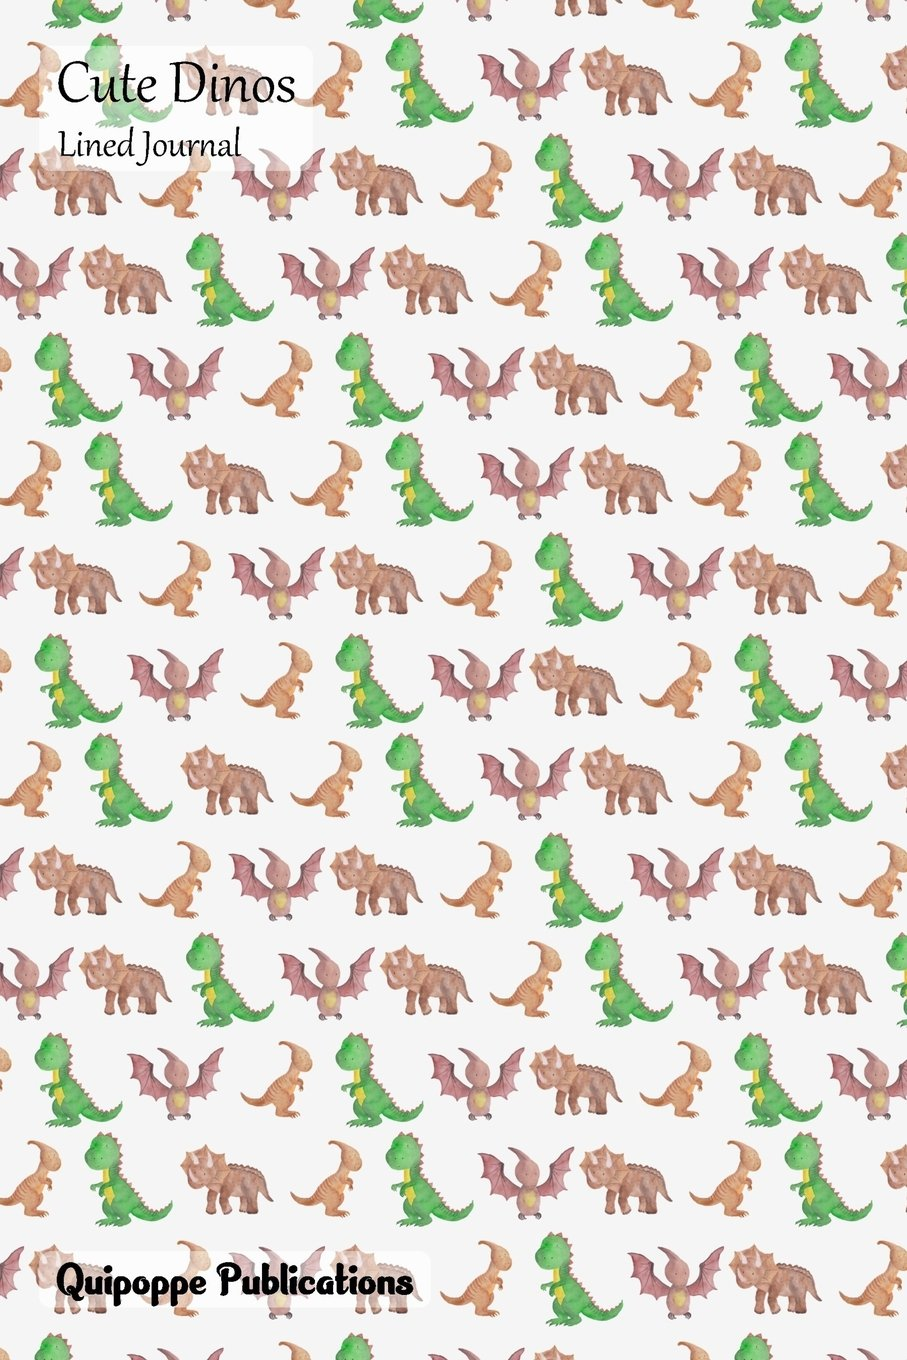 Cute Dinos Lined Journal: Medium Lined Journaling Notebook, Cute Dinos Too Many Dinos Pattern Cover, 6x9